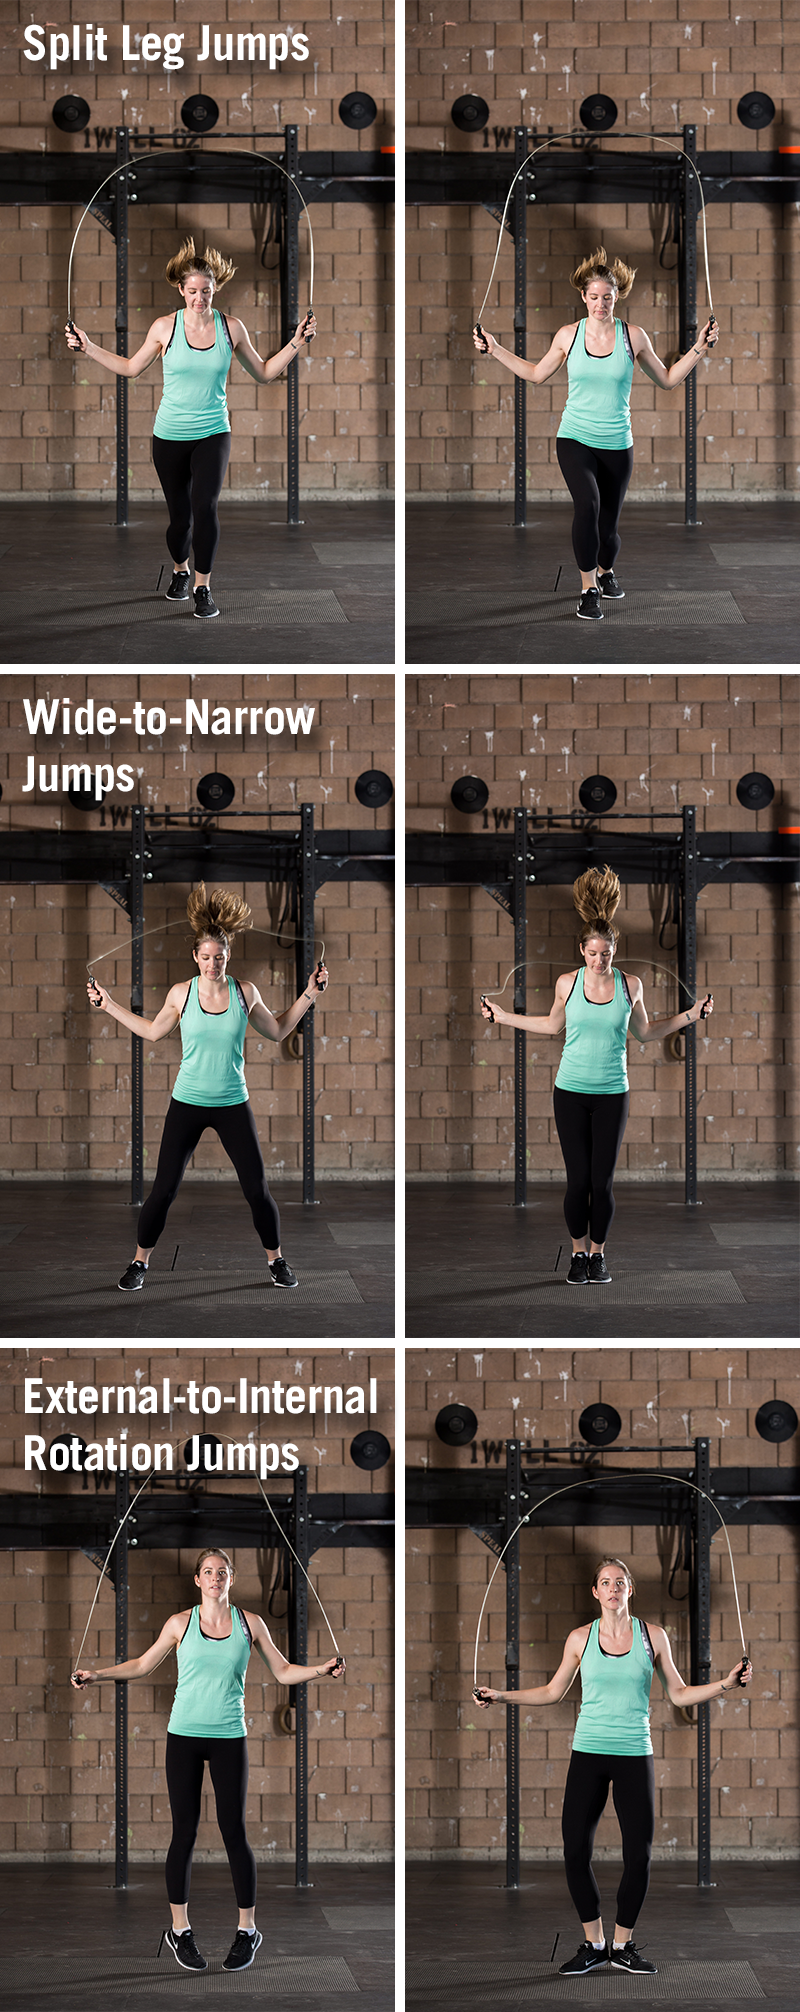 Benefits of Jumping Rope | 7 Reasons to Start Jumping | ACE Blog